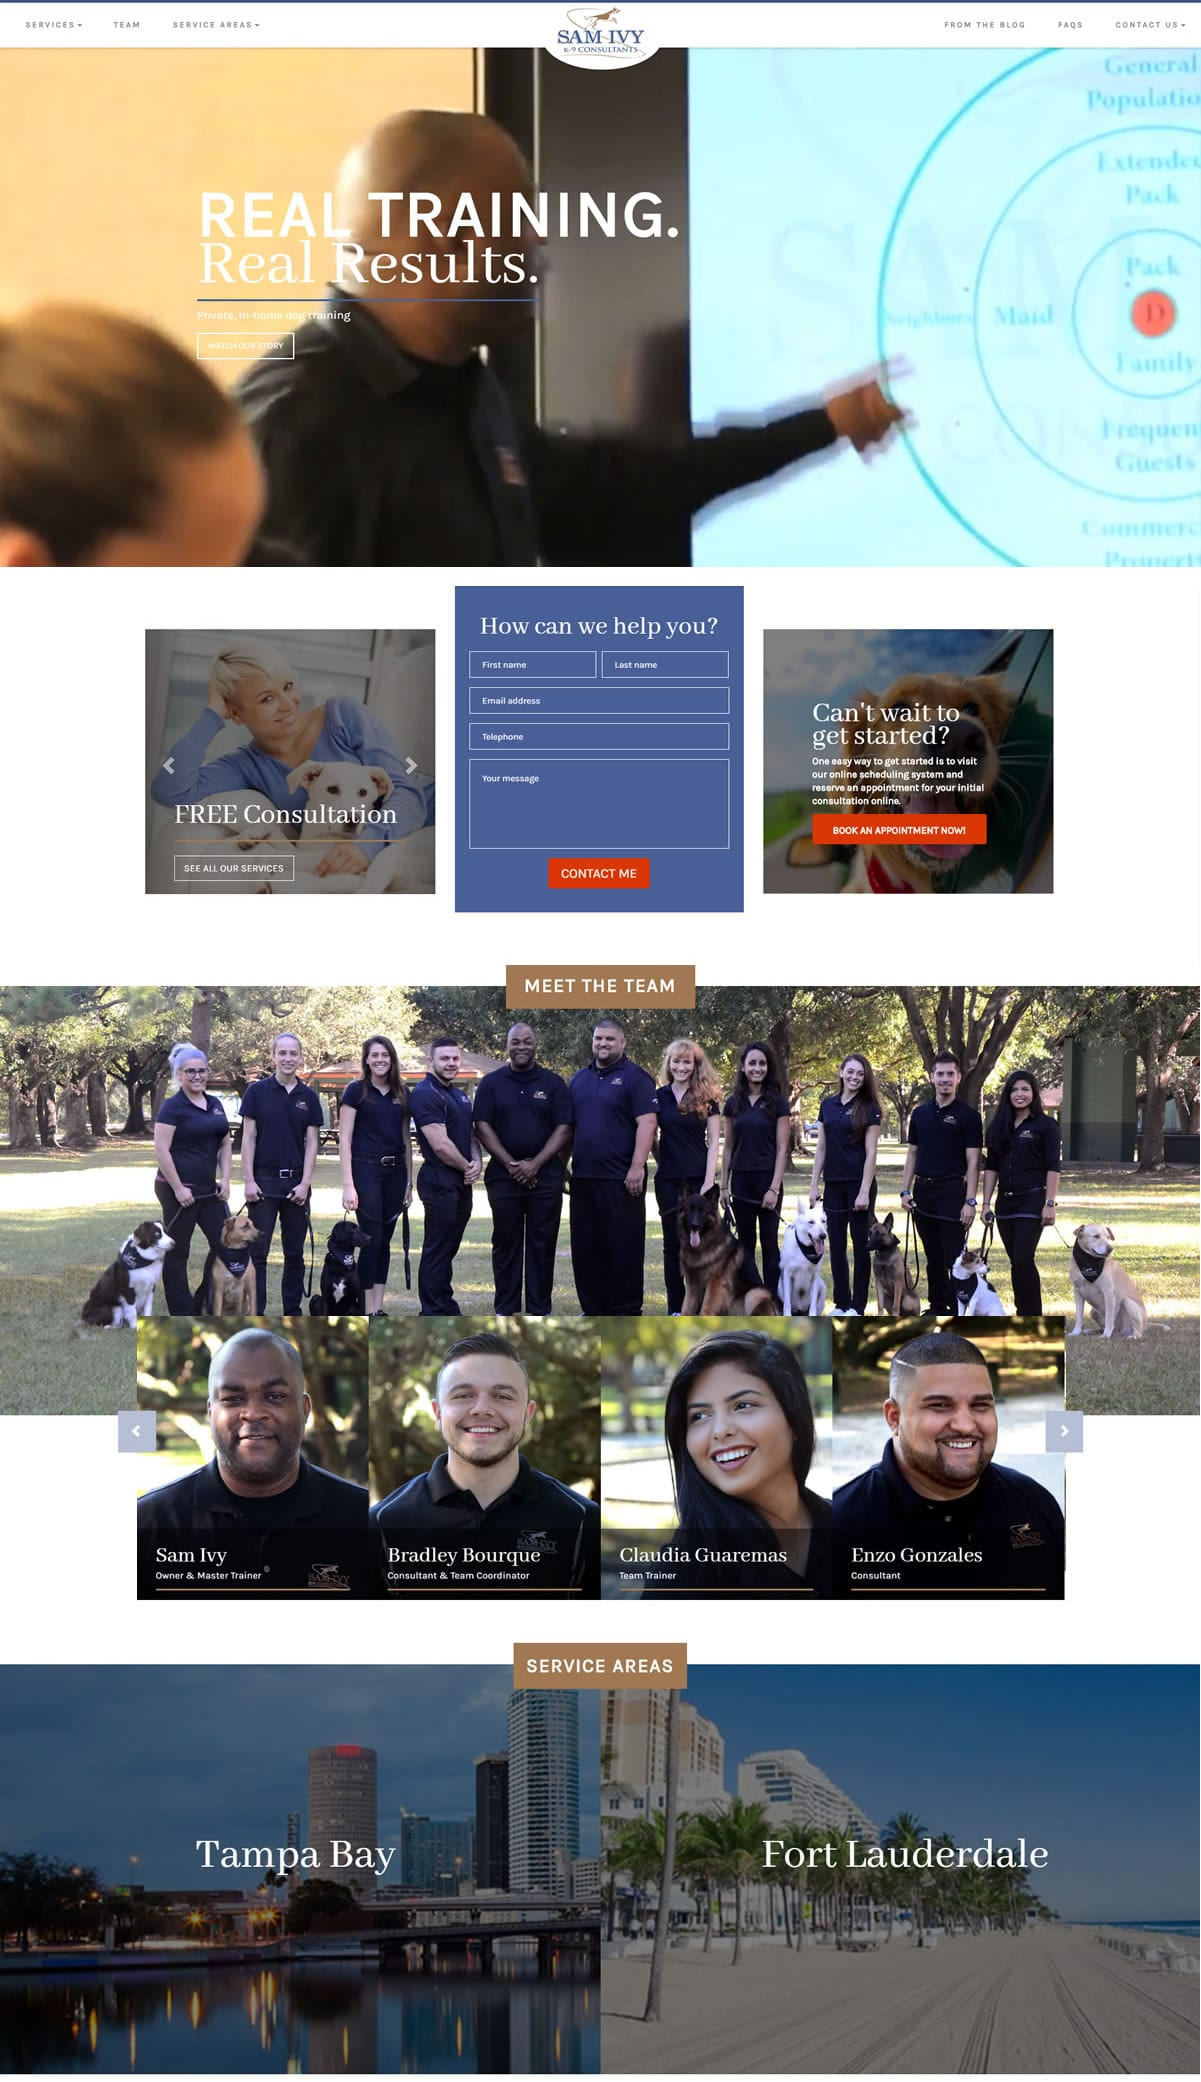 Web Design Brisbane - SamIvy